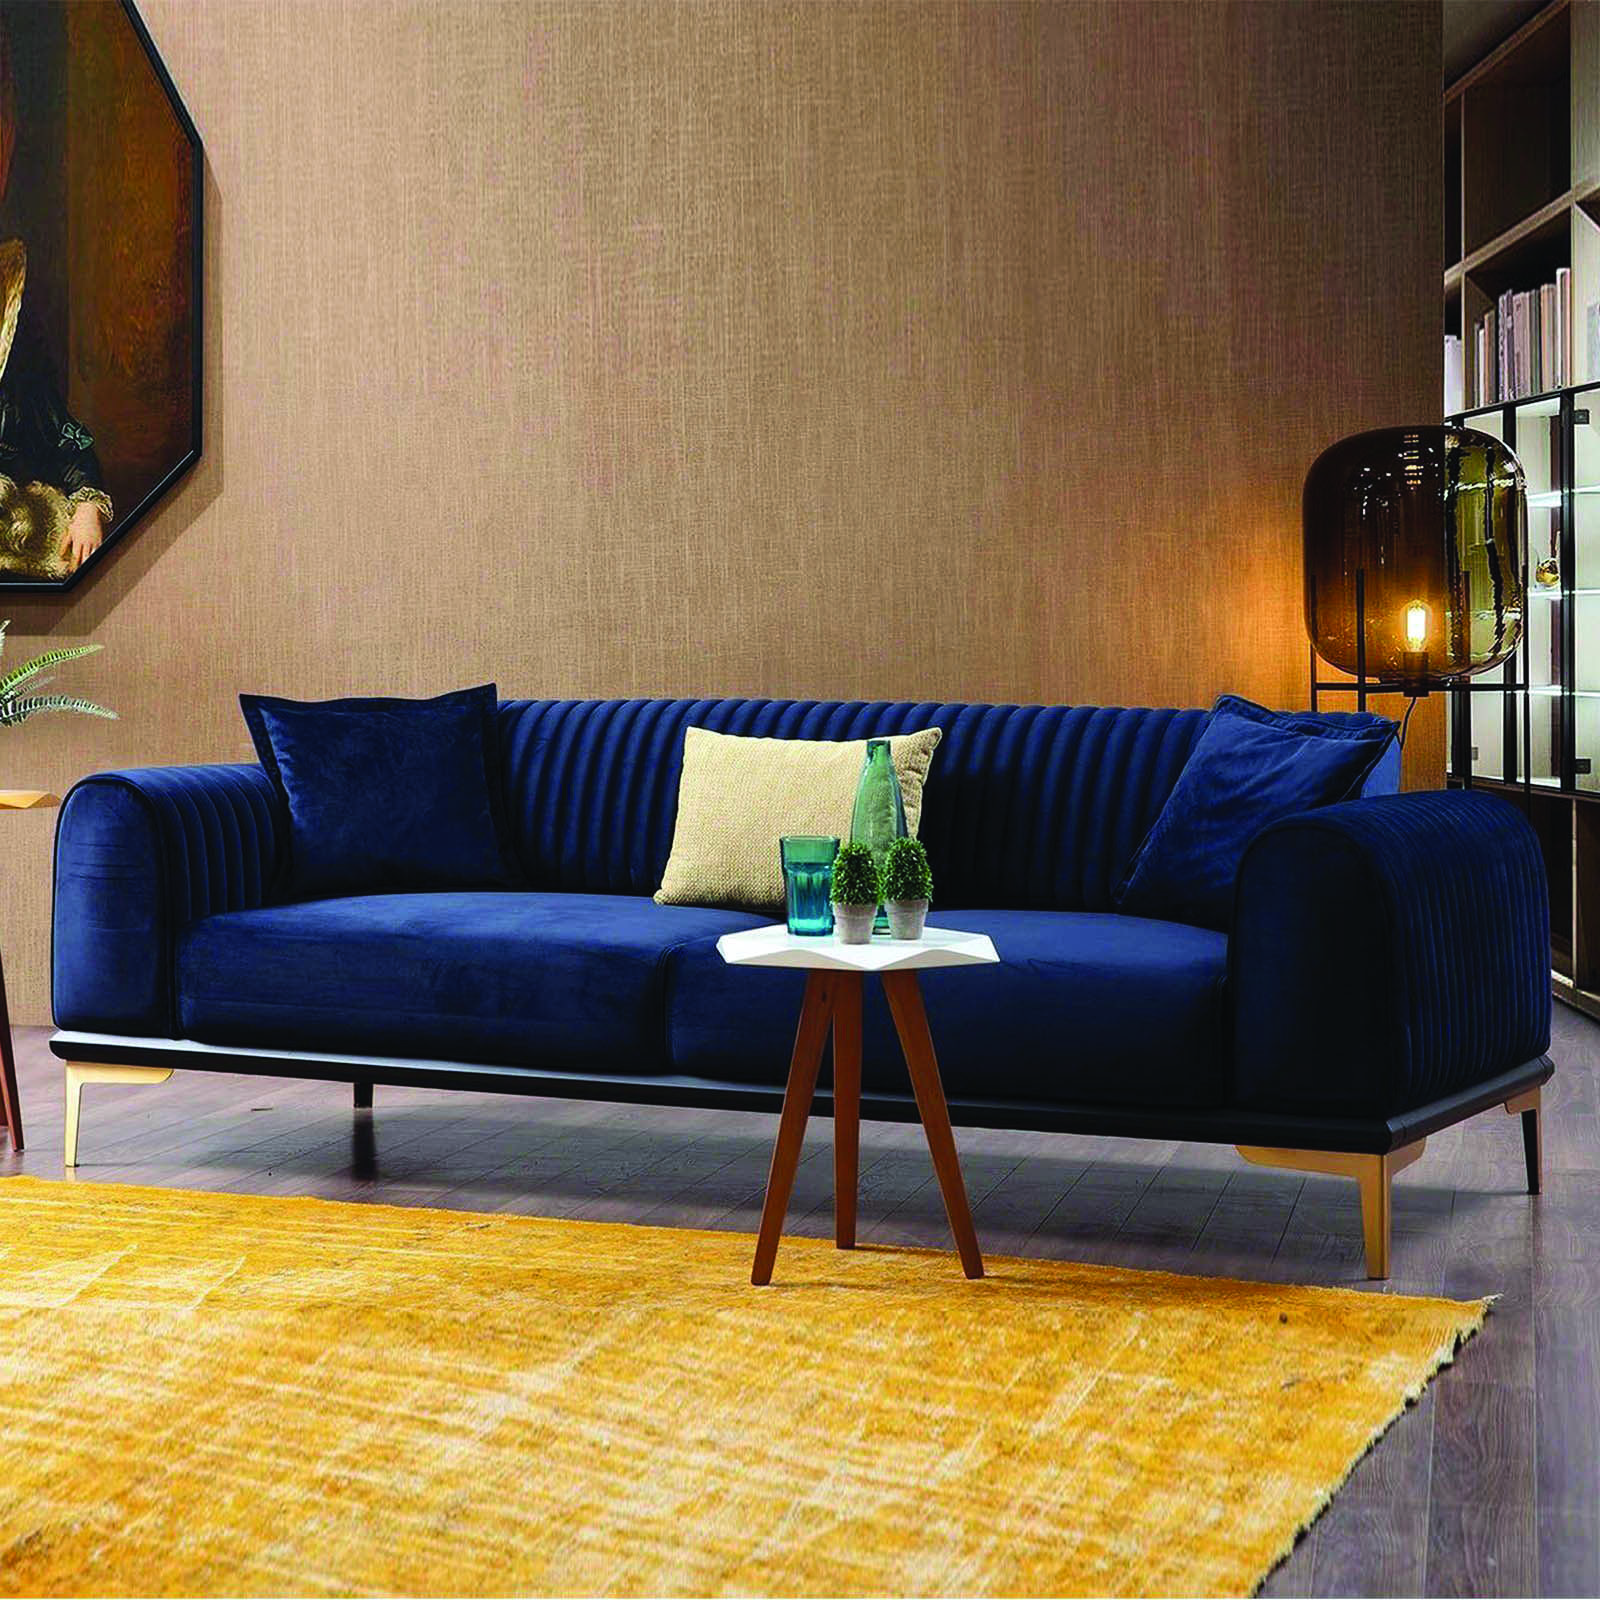 10 Sofas Styles To Fit Every Type Of Decor As Well As Lifestyle Sofa Bed Design Furniture Design Sofa Design